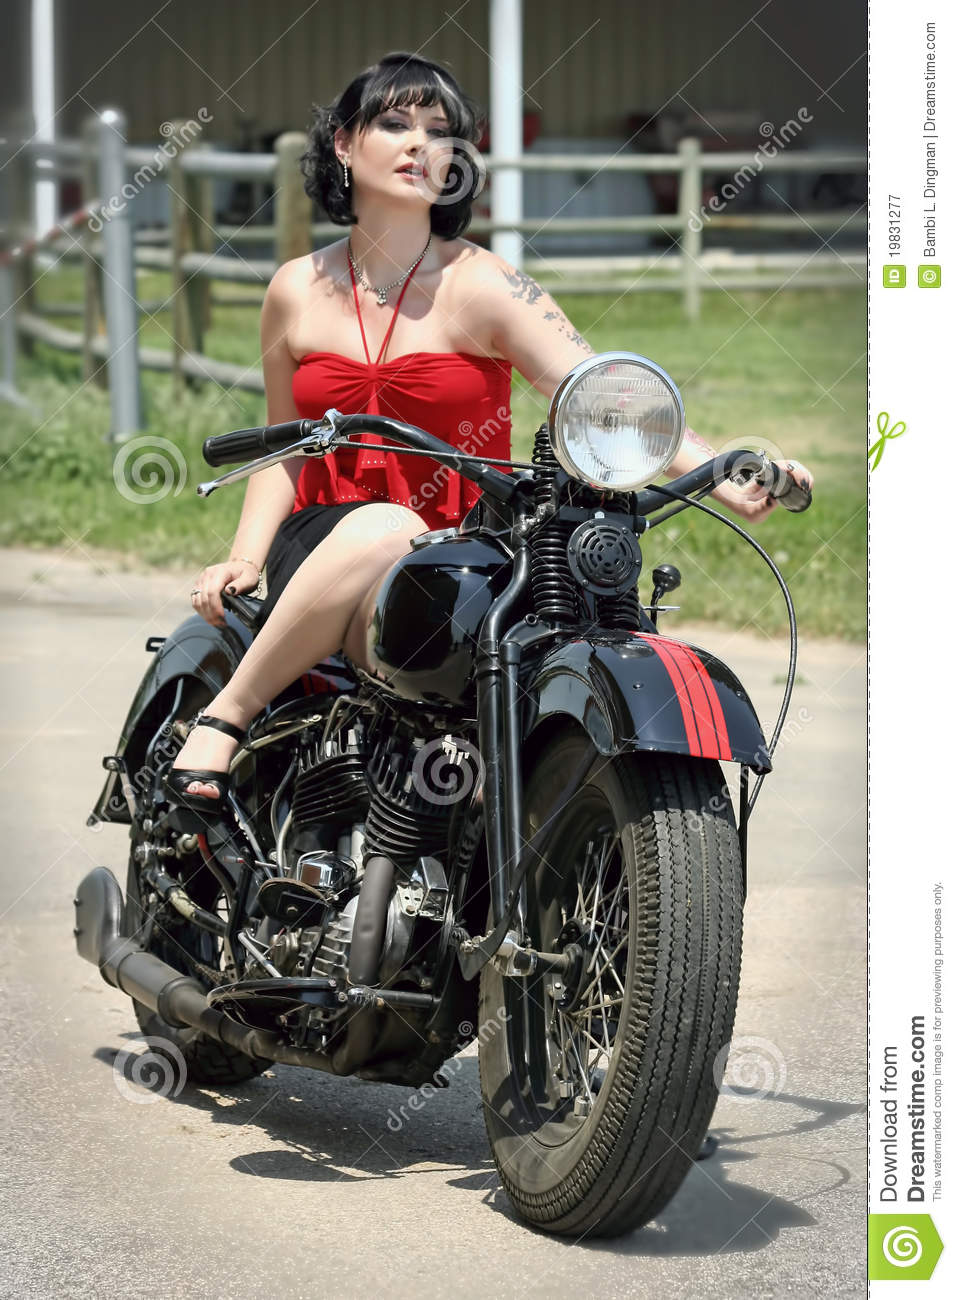 Pinup Woman And Motorcycle Royalty Free Stock Photography - Image ...